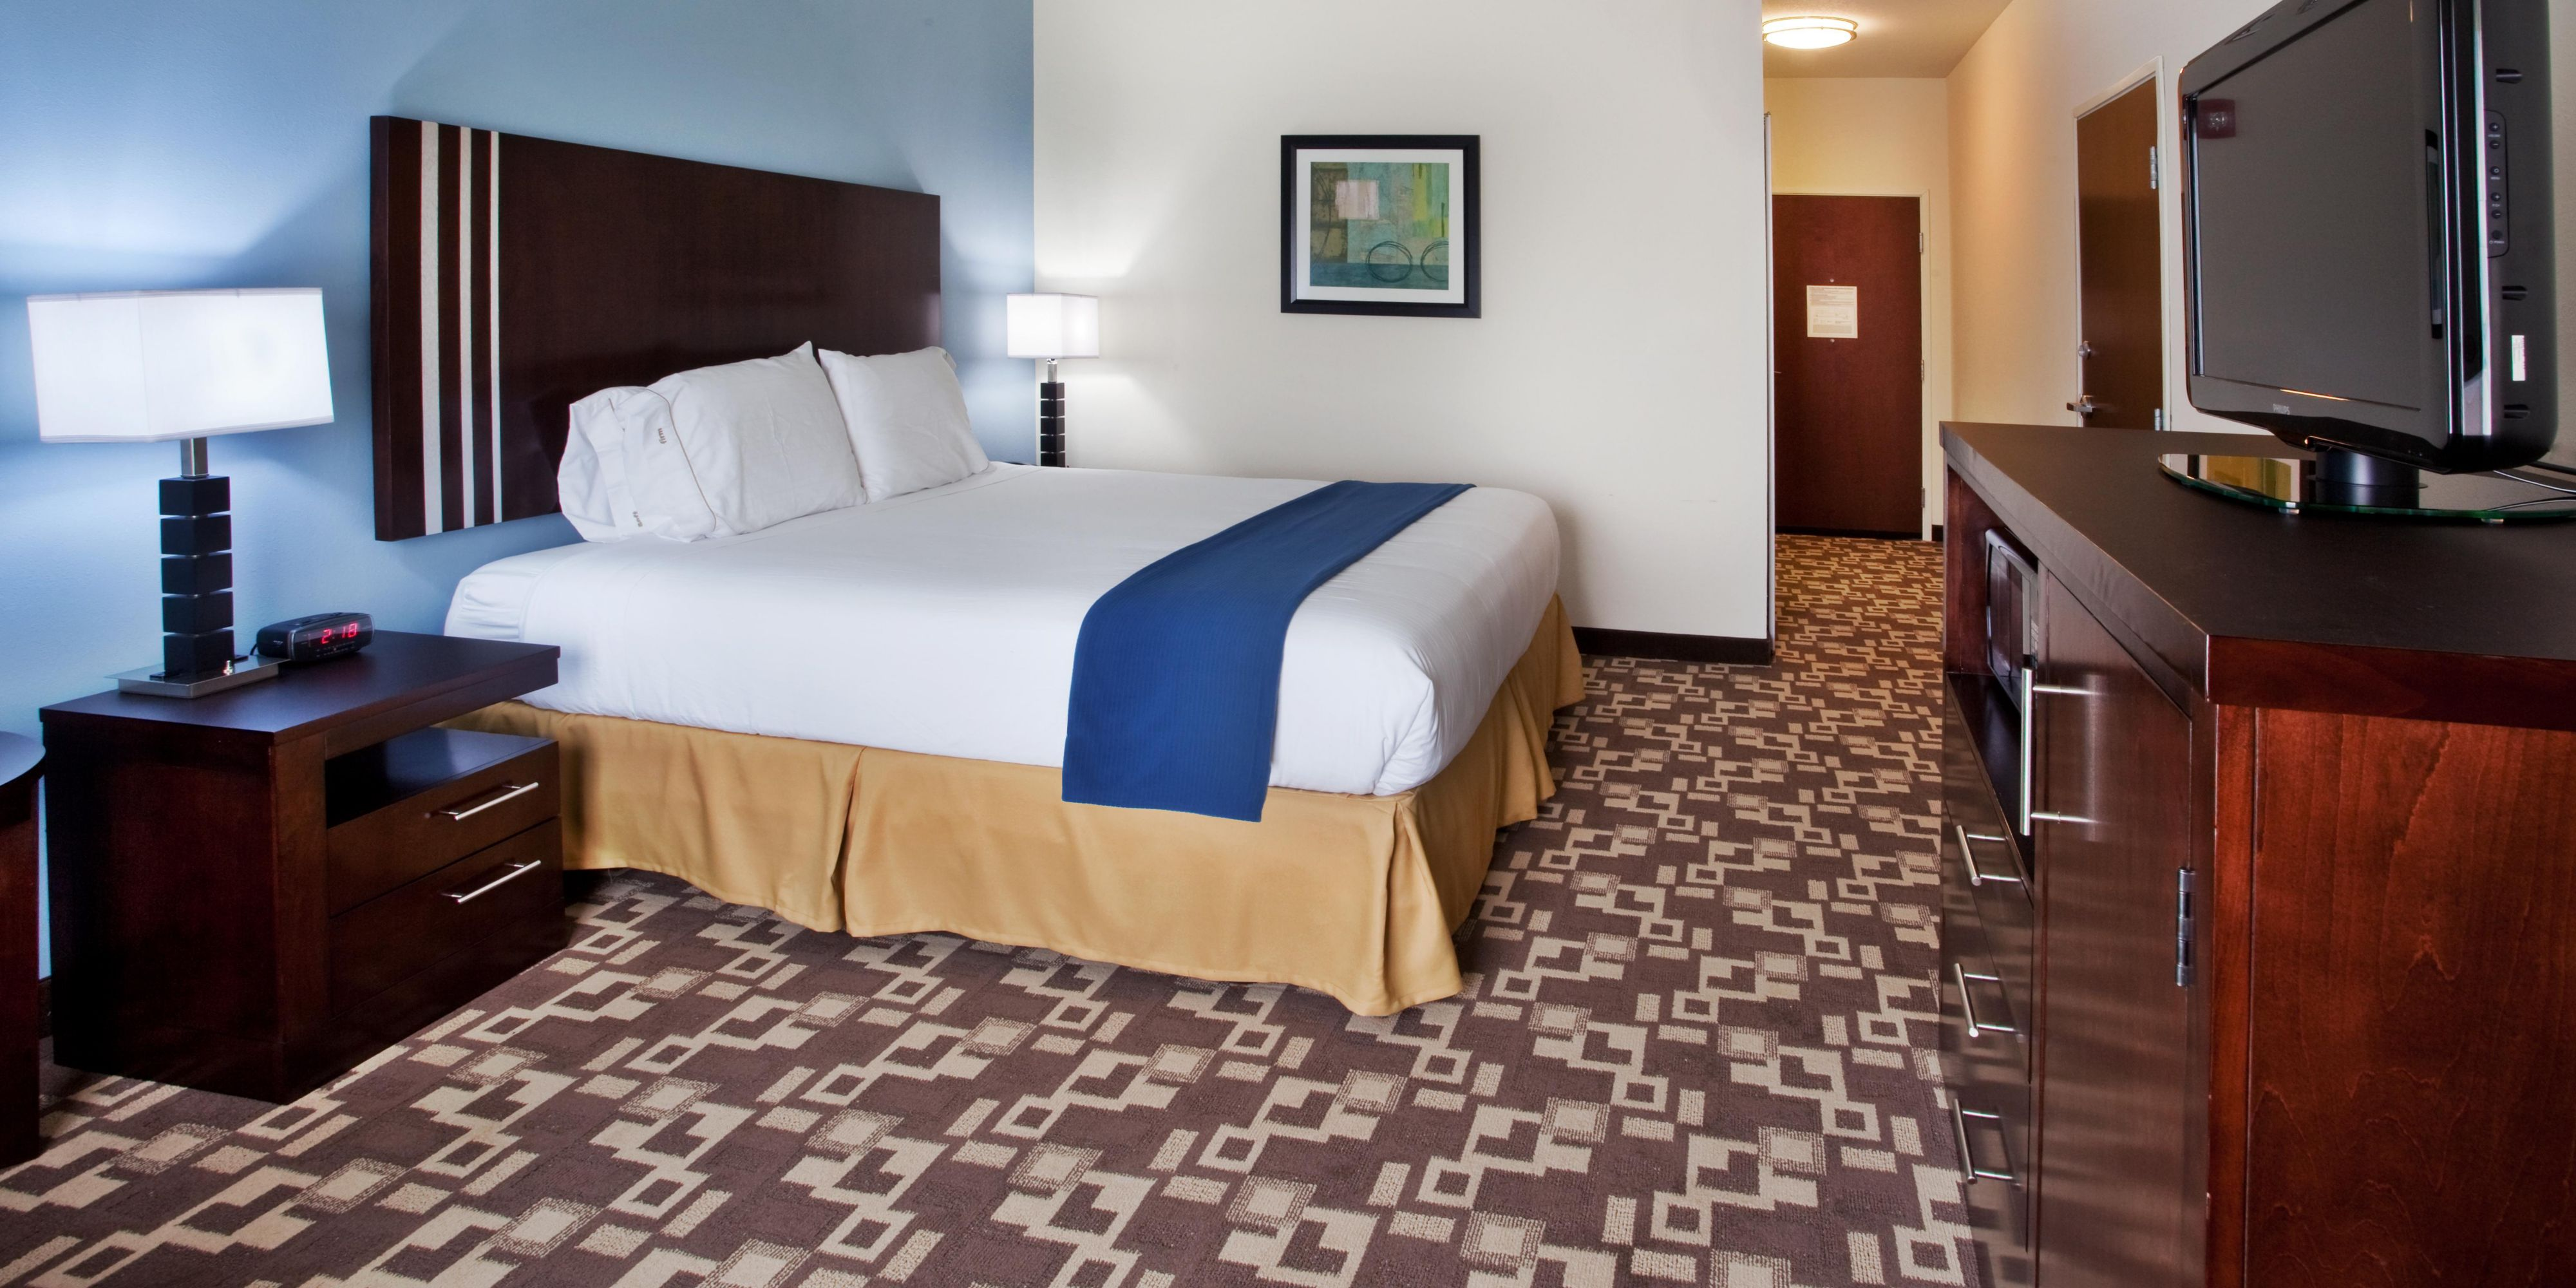 Holiday Inn Express & Suites Atlanta Arpt West Camp Creek Hotel